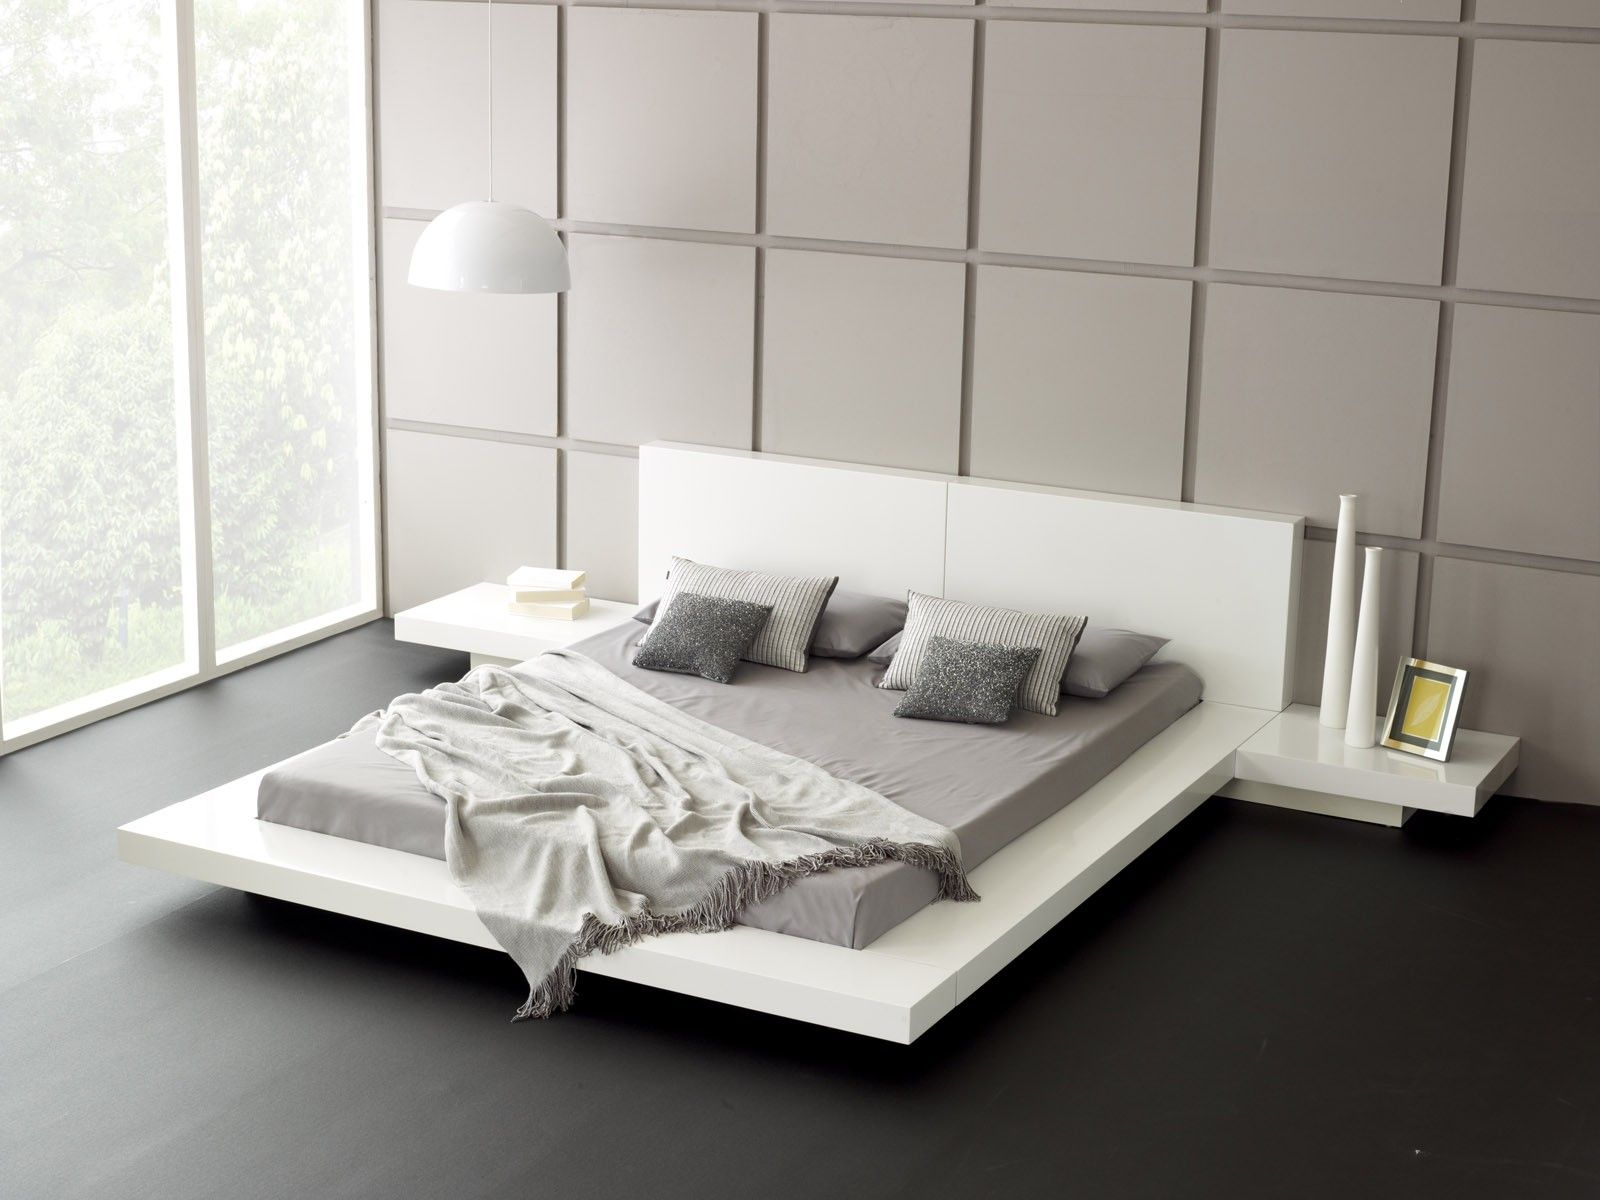 White and Grey Bedroom Ideas  Transforming Your Boring Room into Something Special Best 25 Modern bedroom design ideas on Pinterest